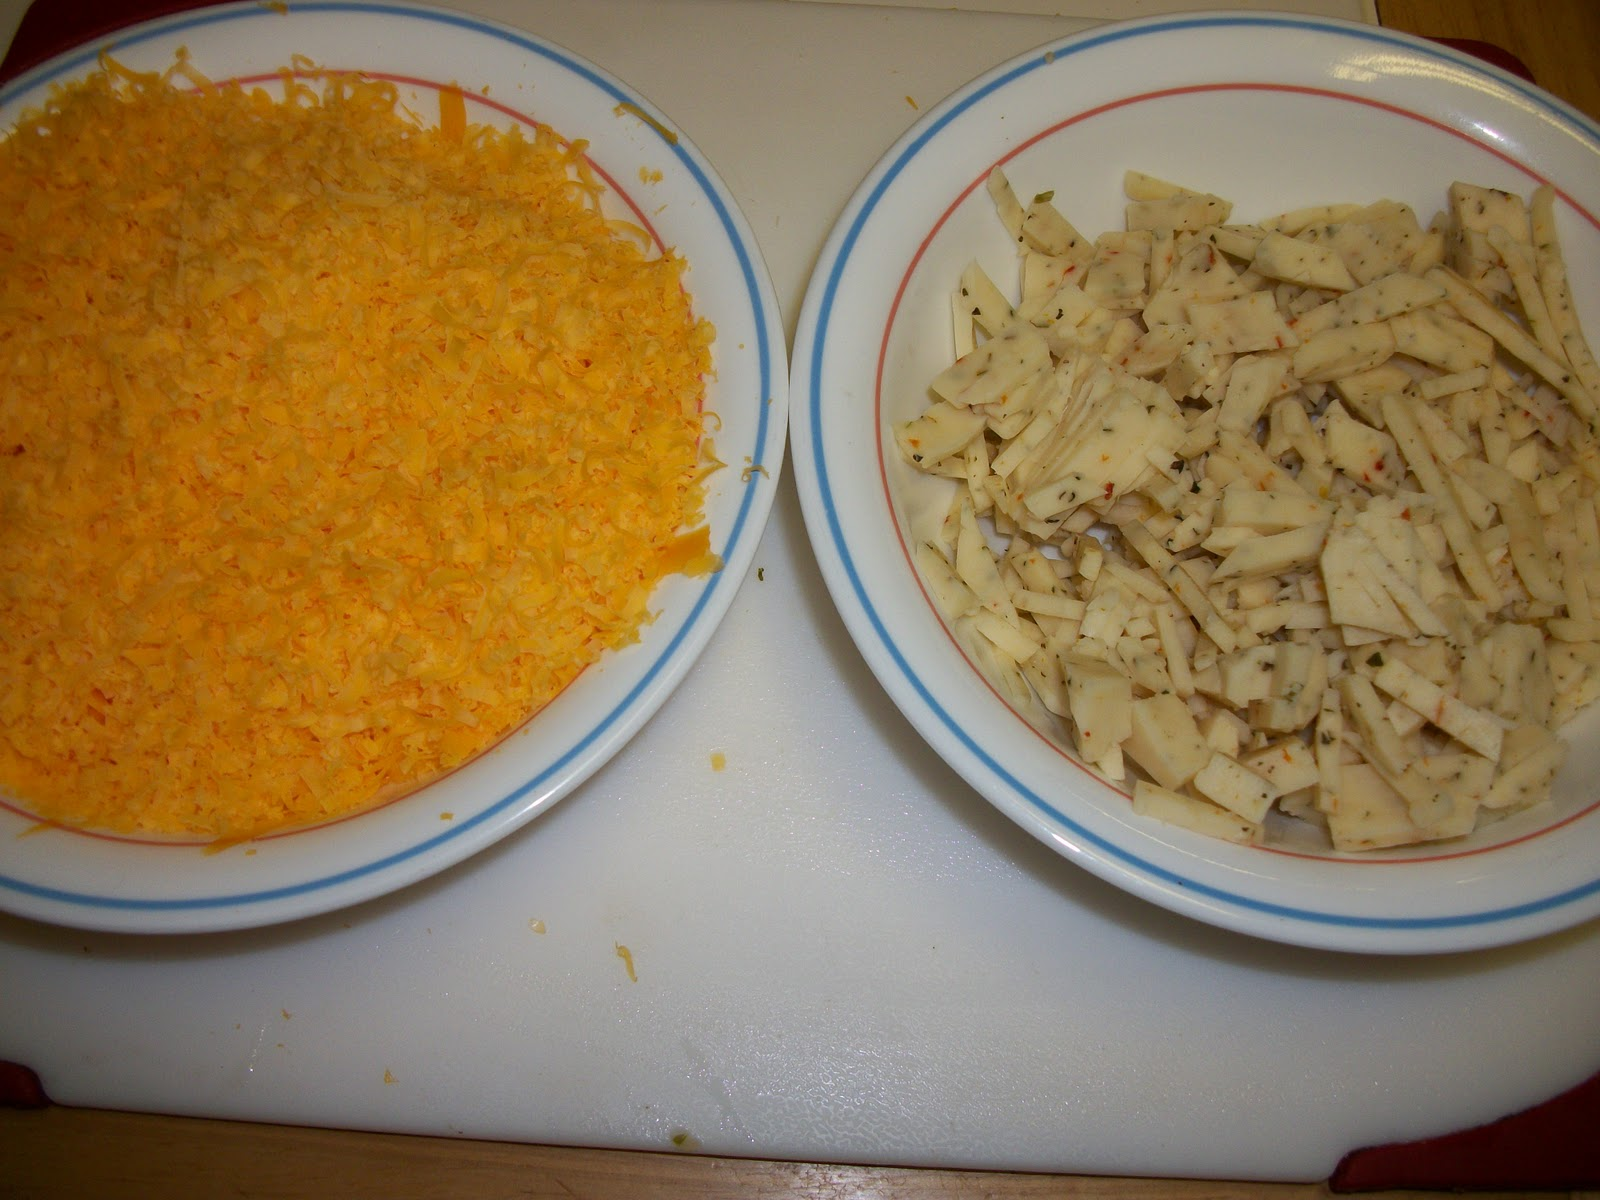 Pioneer woman makes mac and cheese with panko for Pioneer woman mac and cheese recipe